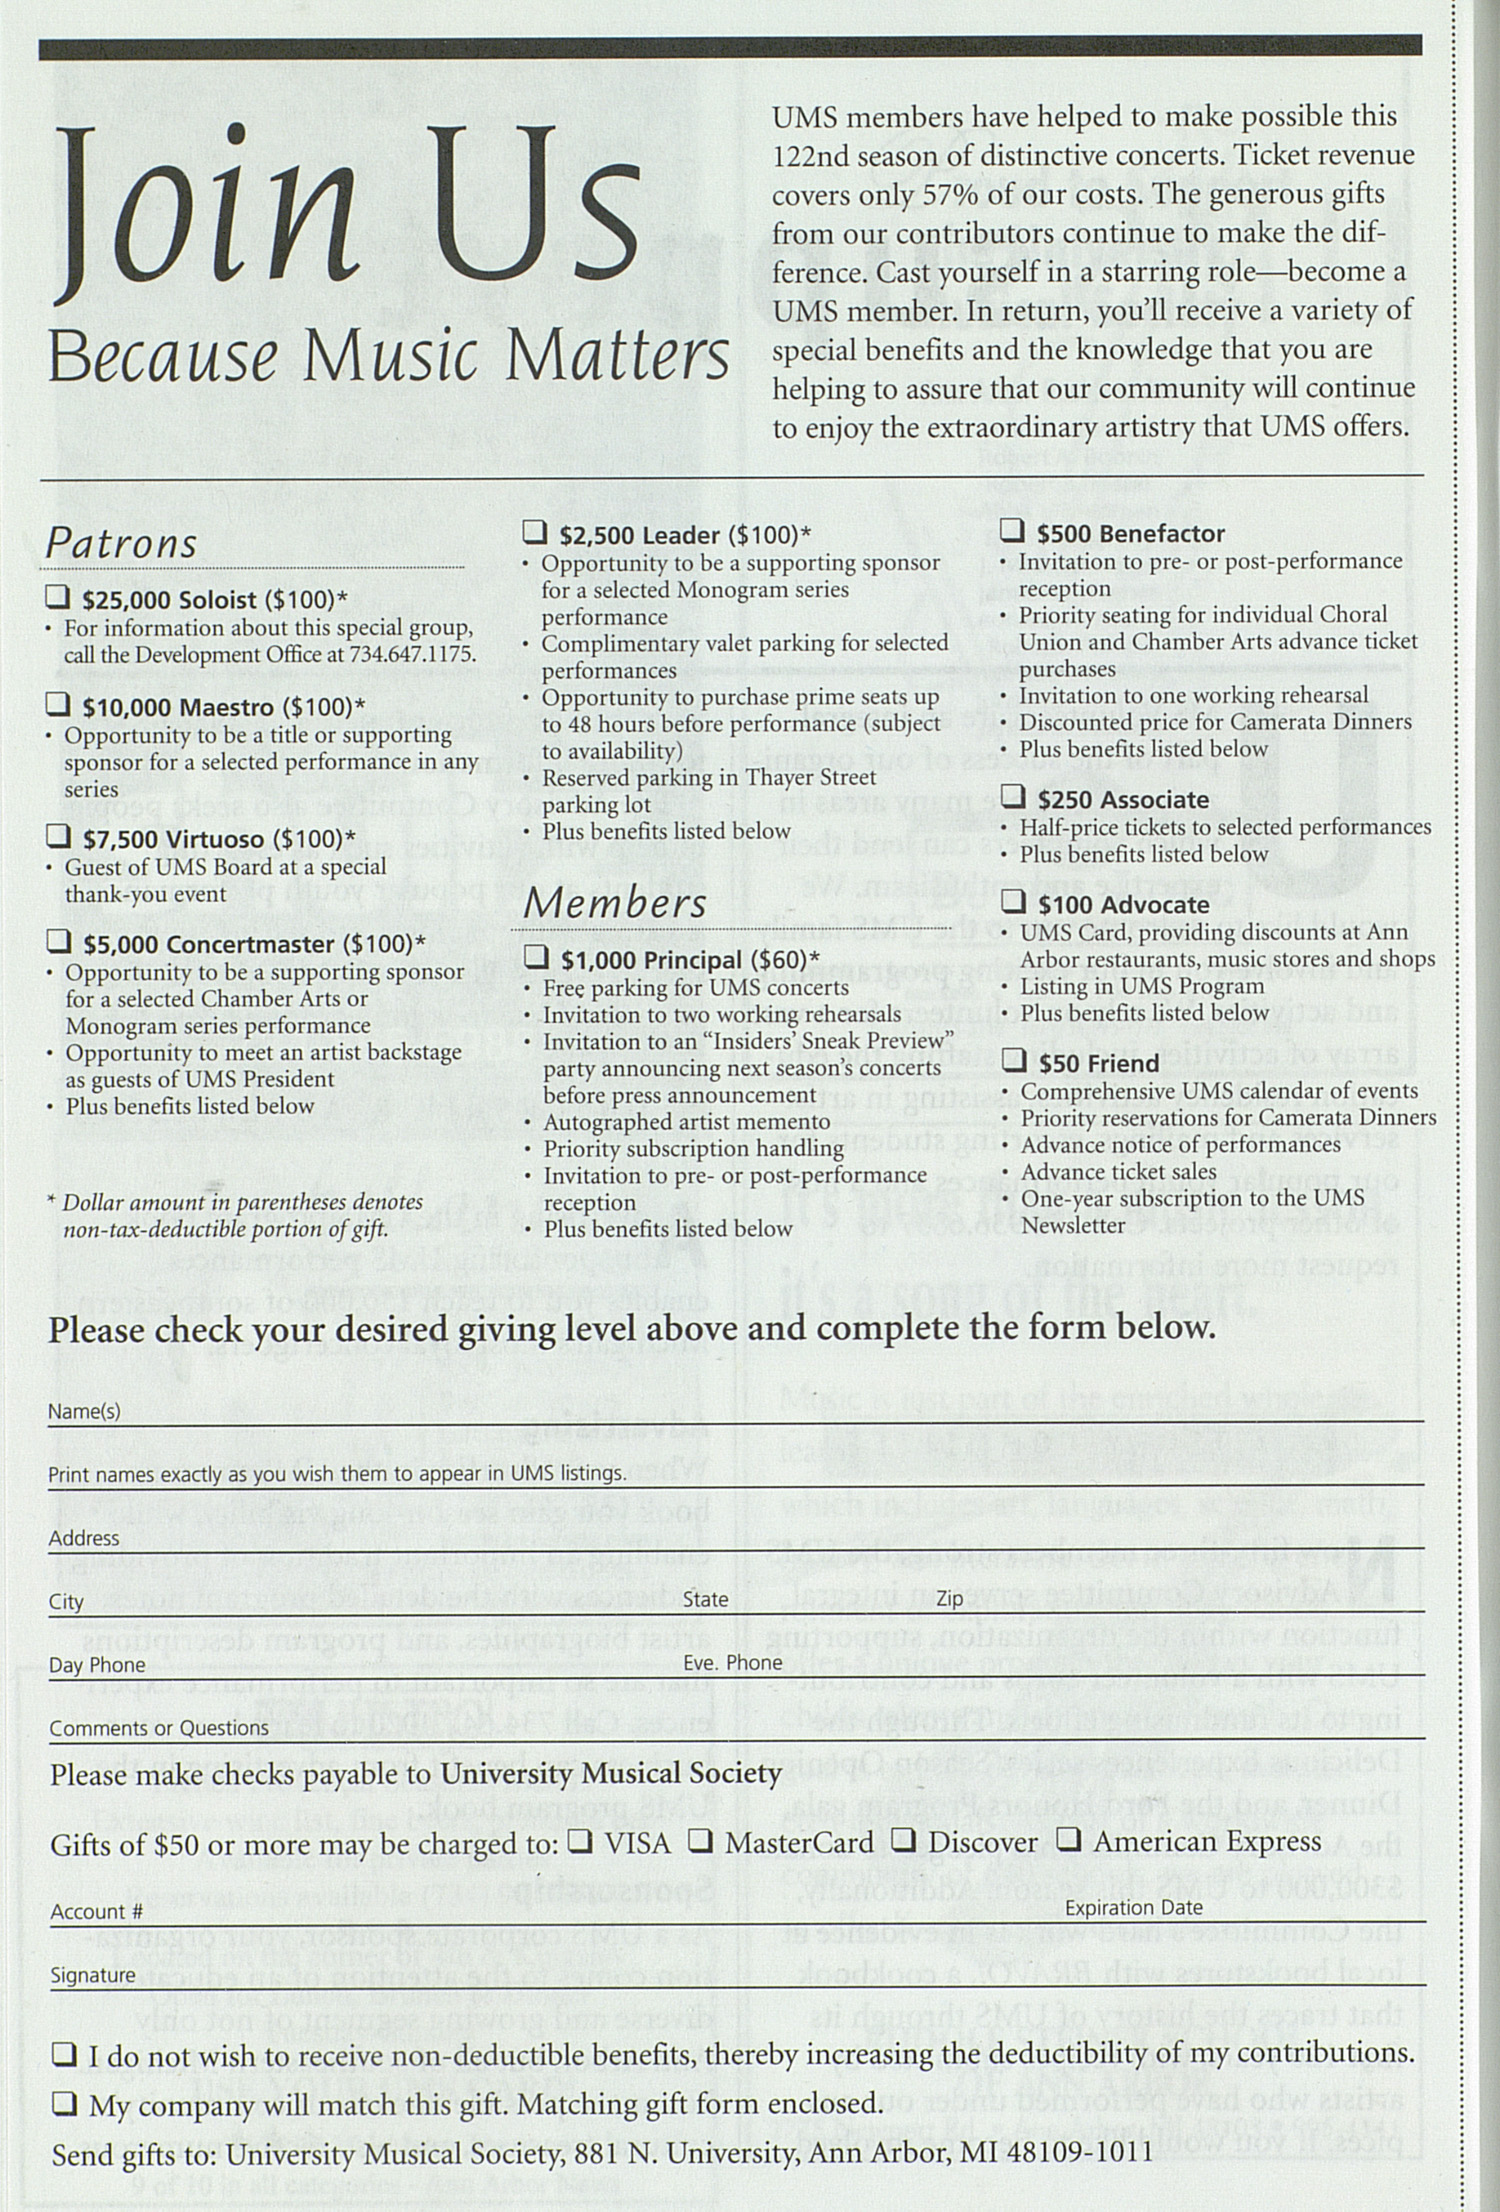 UMS Concert Program, Saturday Dec. 02 To 16: University Musical Society: Fall 2000 - Saturday Dec. 02 To 16 --  image